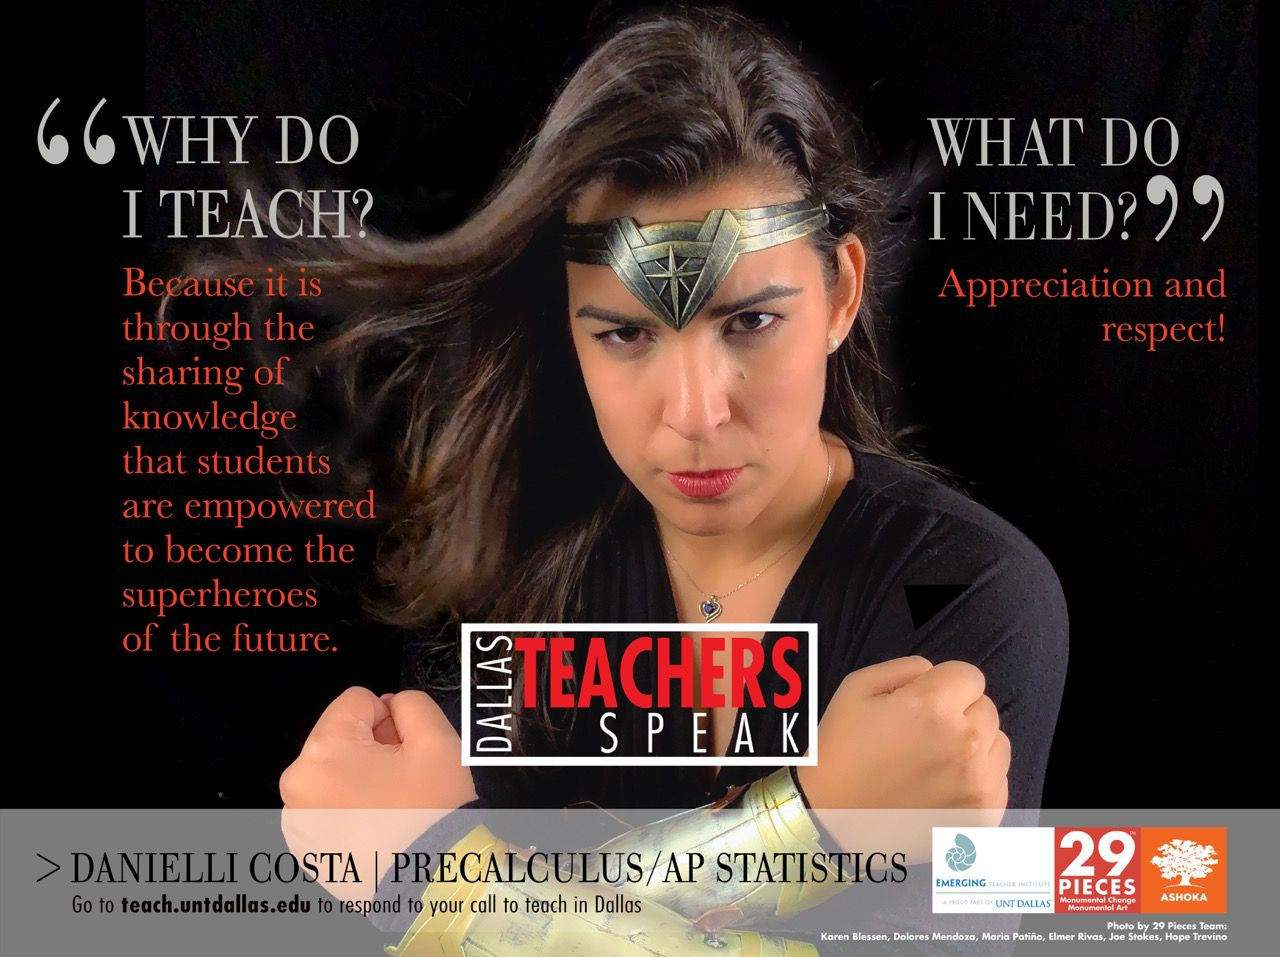 One of the posters shows Dallas ISD teacher Danielli Costa in Wonder Woman accessories.